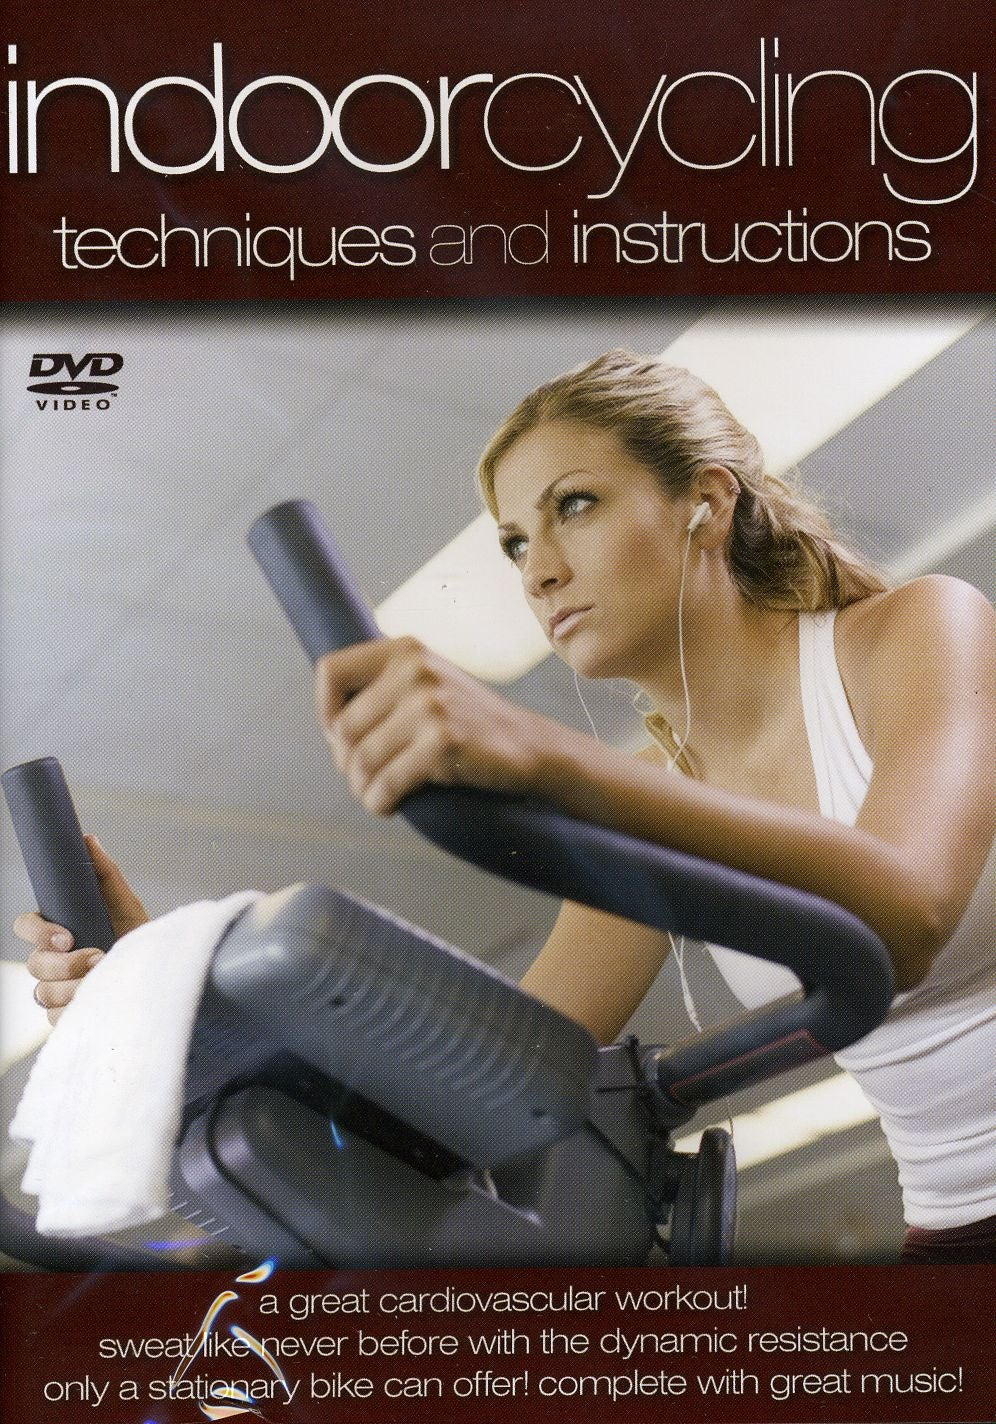 Indoor Cycling: Techniques And Instructions (DVD)